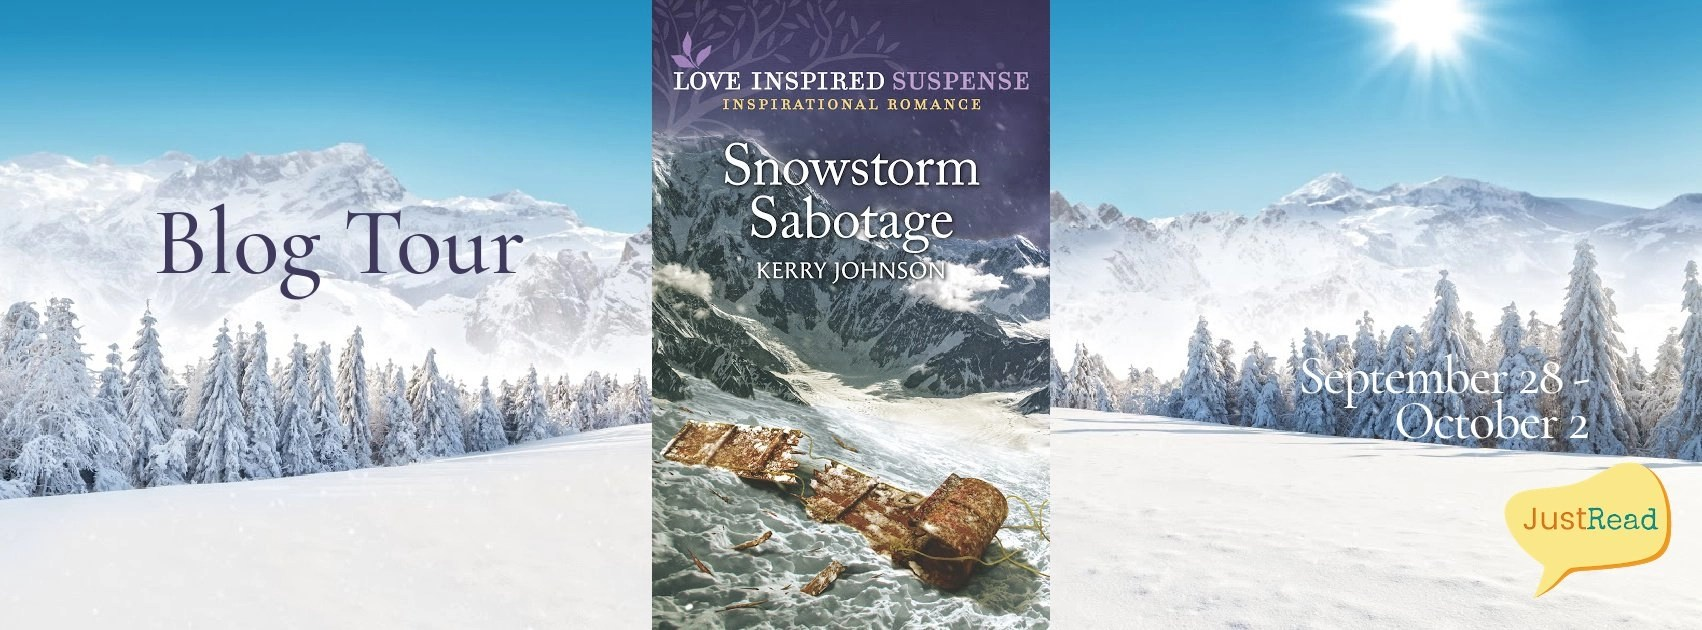 Welcome to the Snowstorm Sabotage Blog Tour & Giveaway!